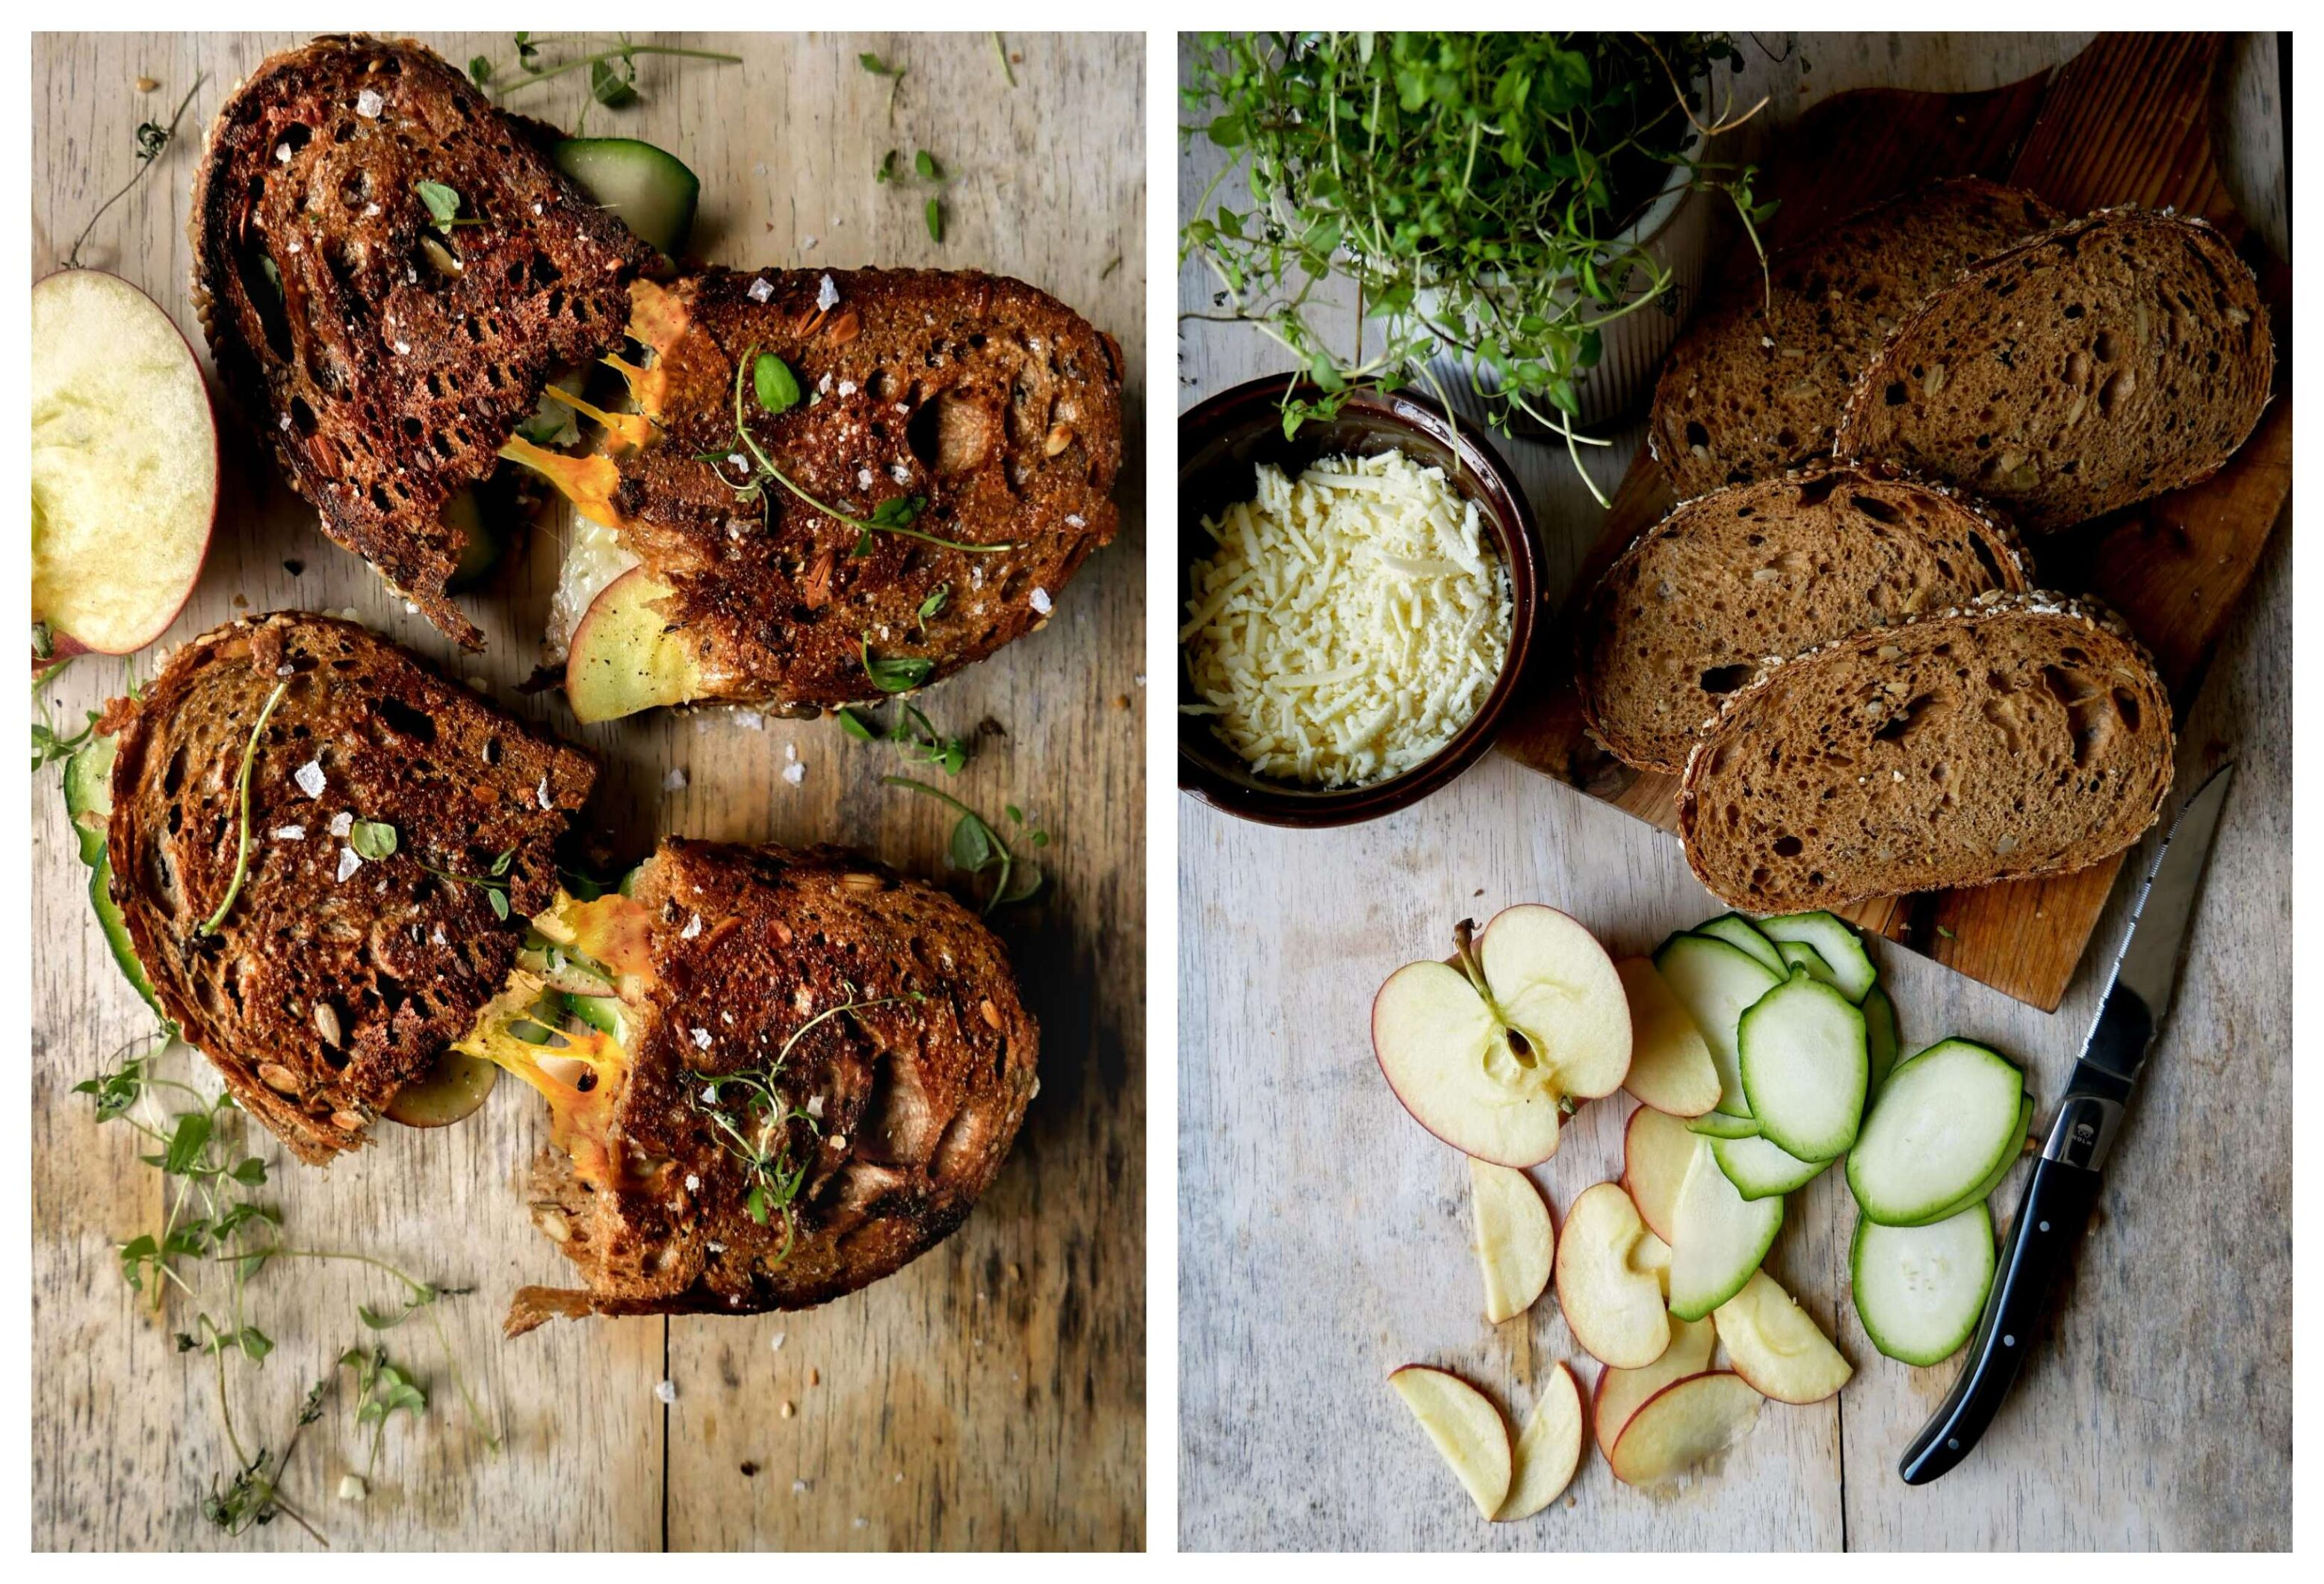 toast with apples and zucchini